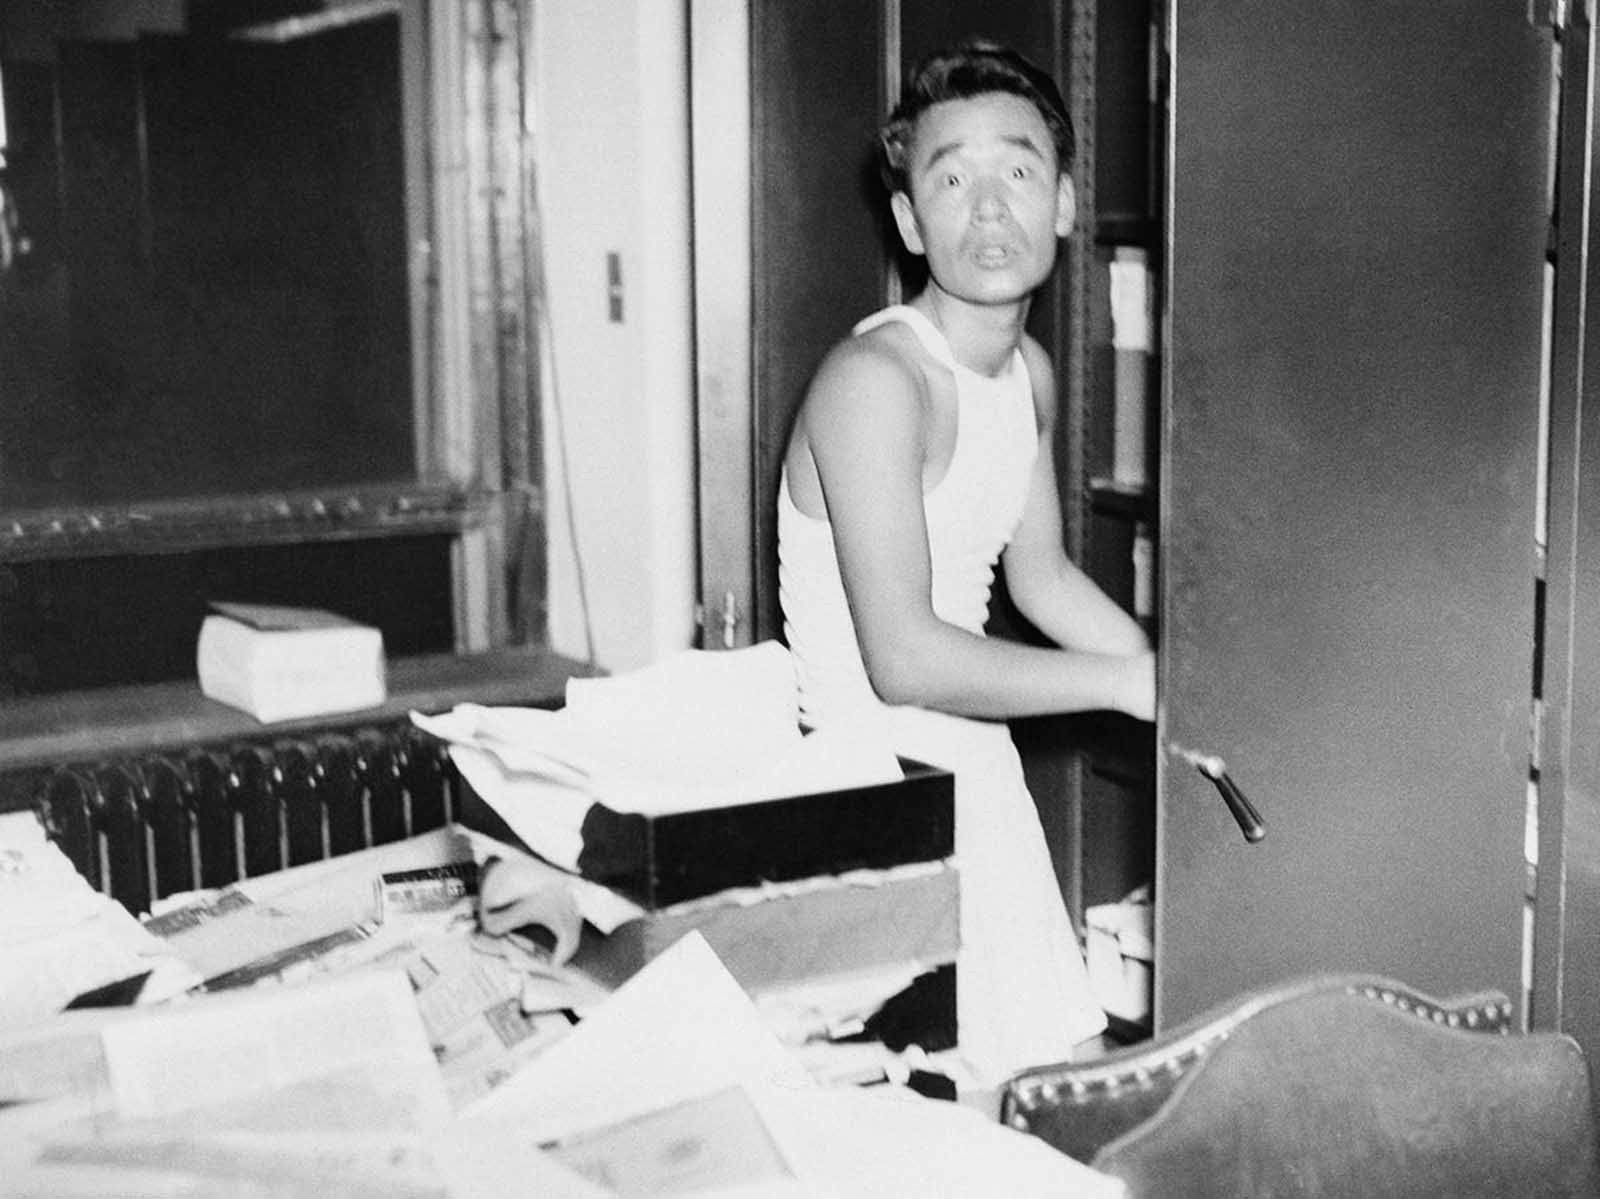 This unidentified Japanese man turns to face a visitor at the Japanese Consulate in Chicago, on December 9, 1941. Clad only in underwear, he was startled while in the act of taking papers and files from a cabinet. Confidential papers at the consulate had been burned.